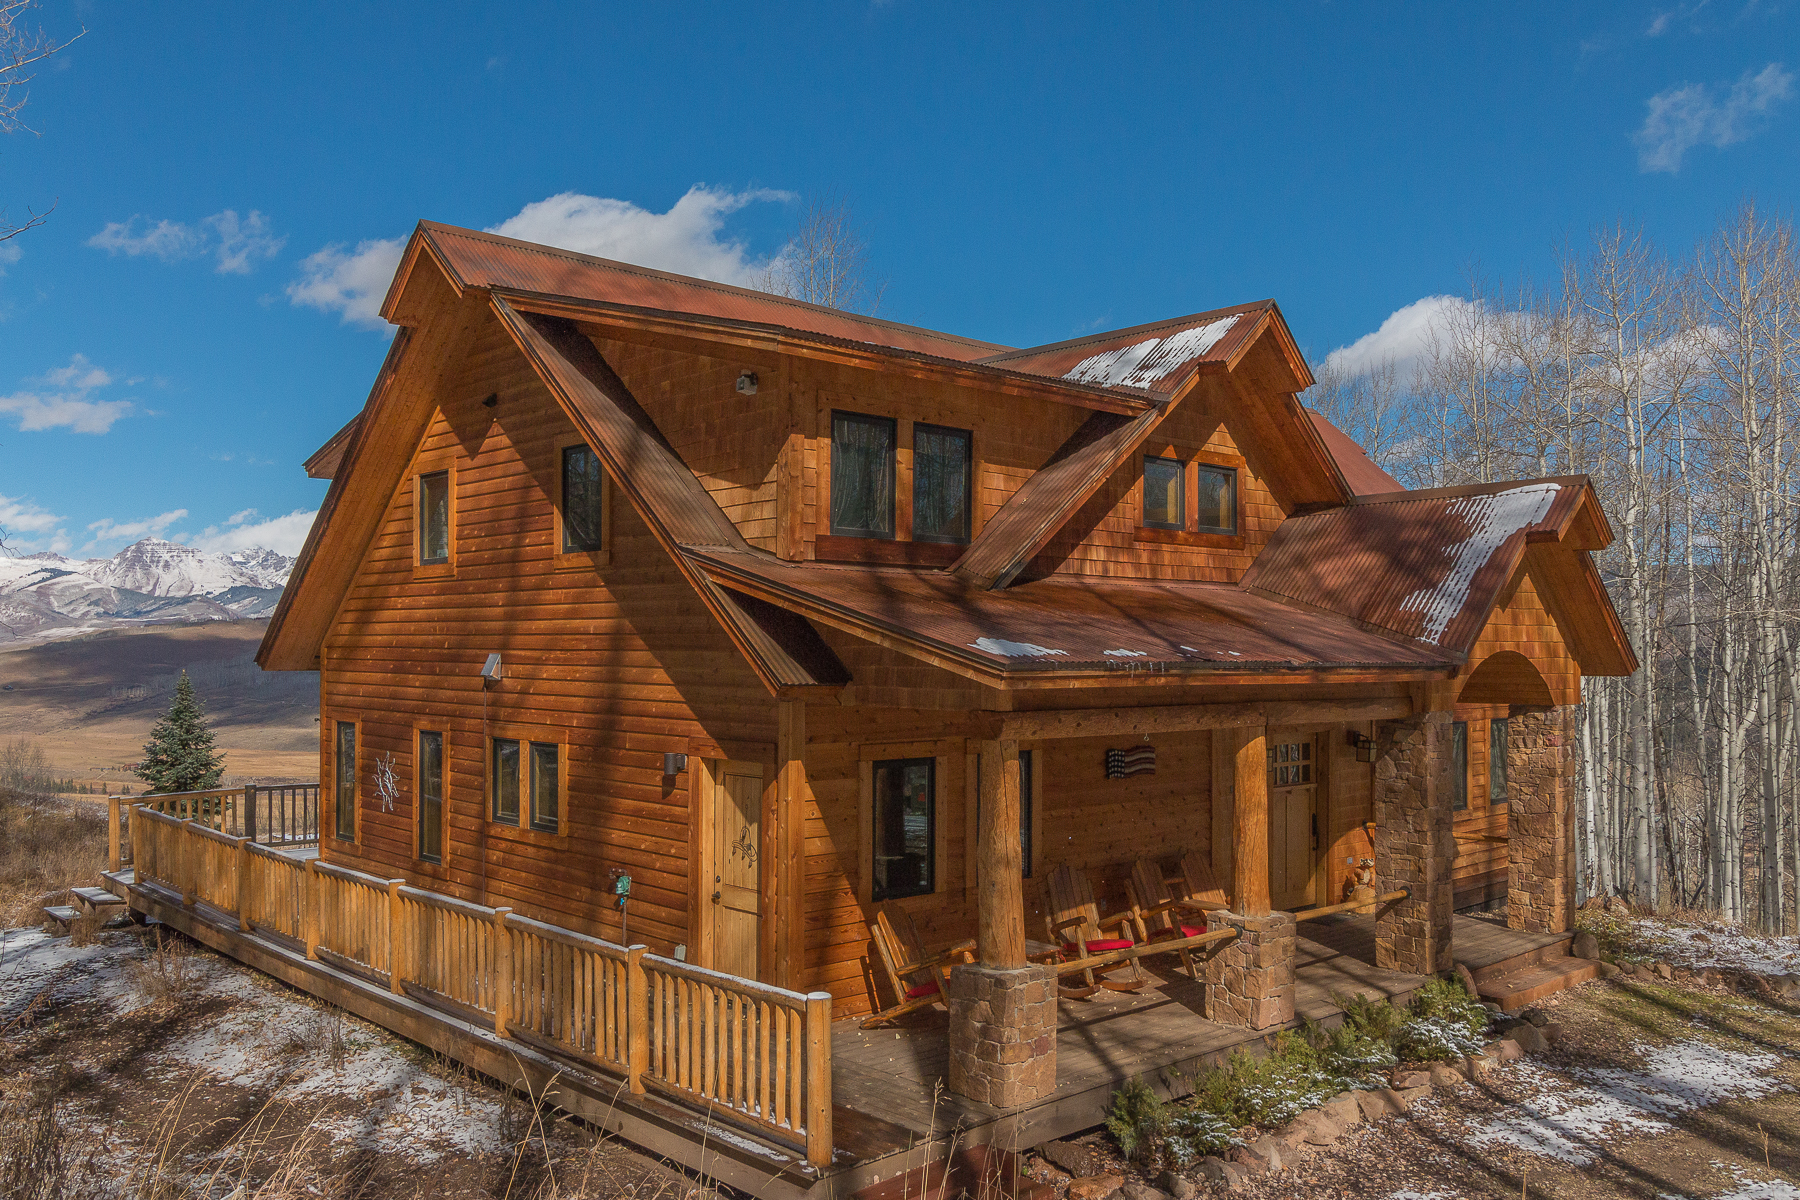 Casa Unifamiliar por un Venta en Secluded Retreat with Views 496 White Buffalo Trail, Crested Butte, Colorado, 81224 Estados Unidos